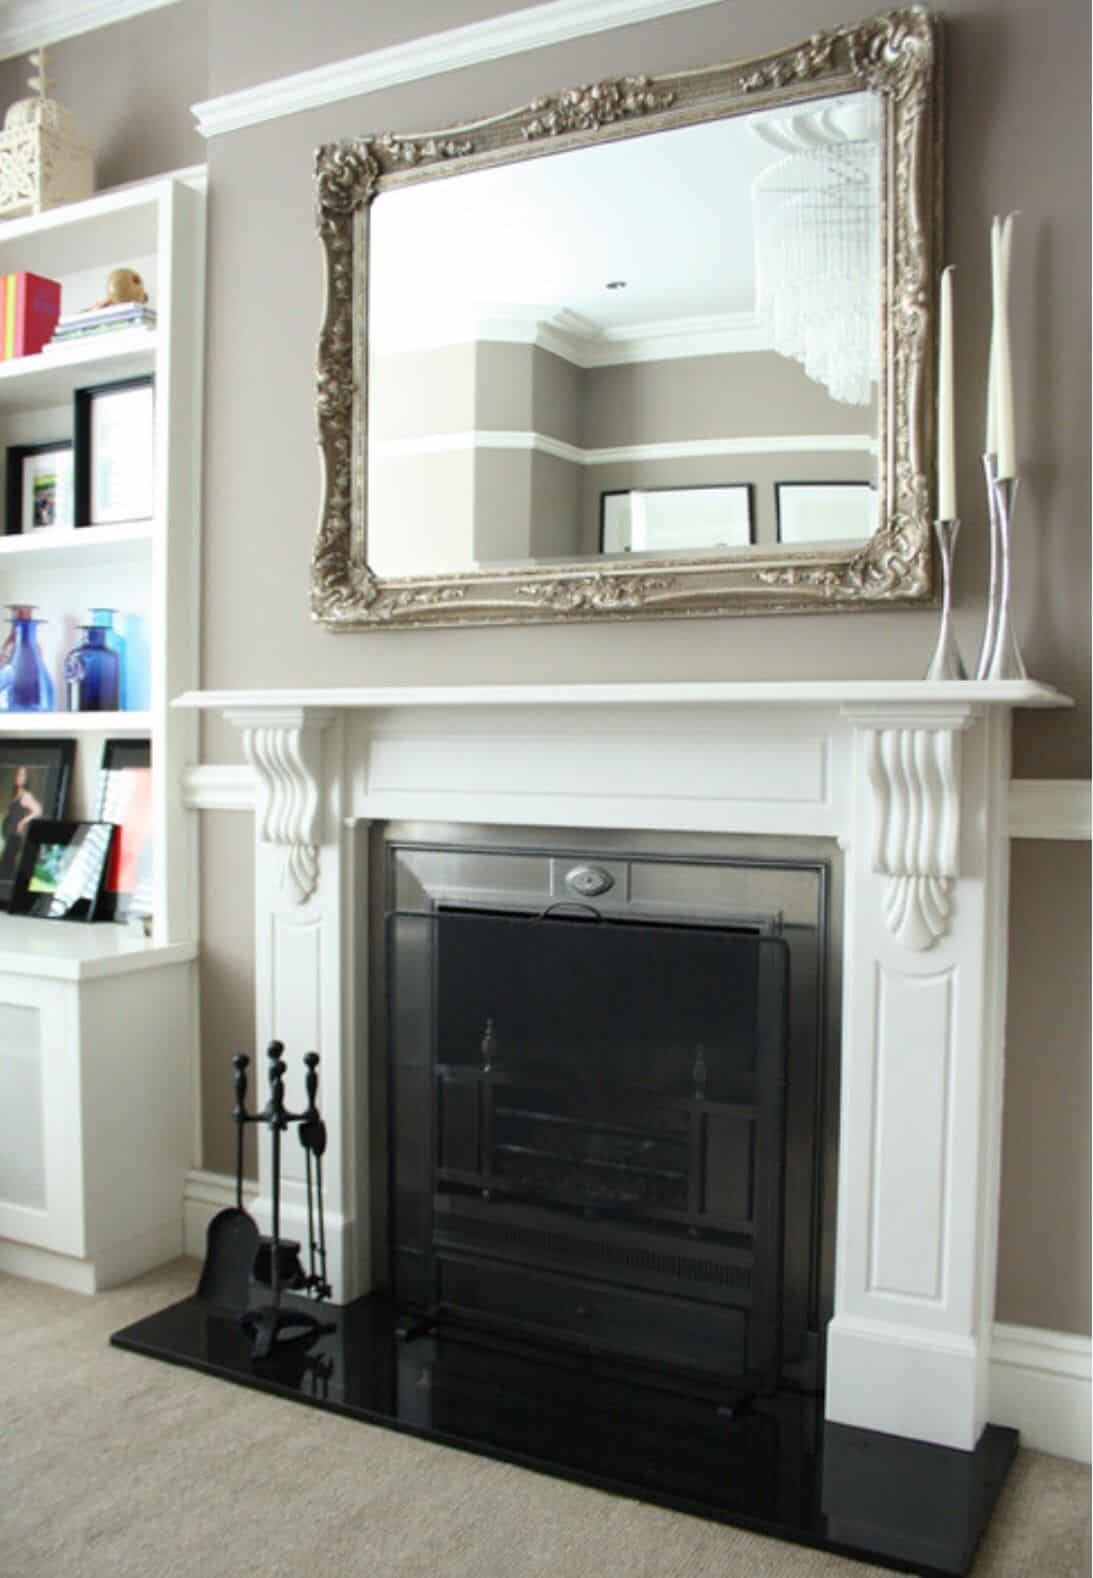 Fireplace mantel with a mirror